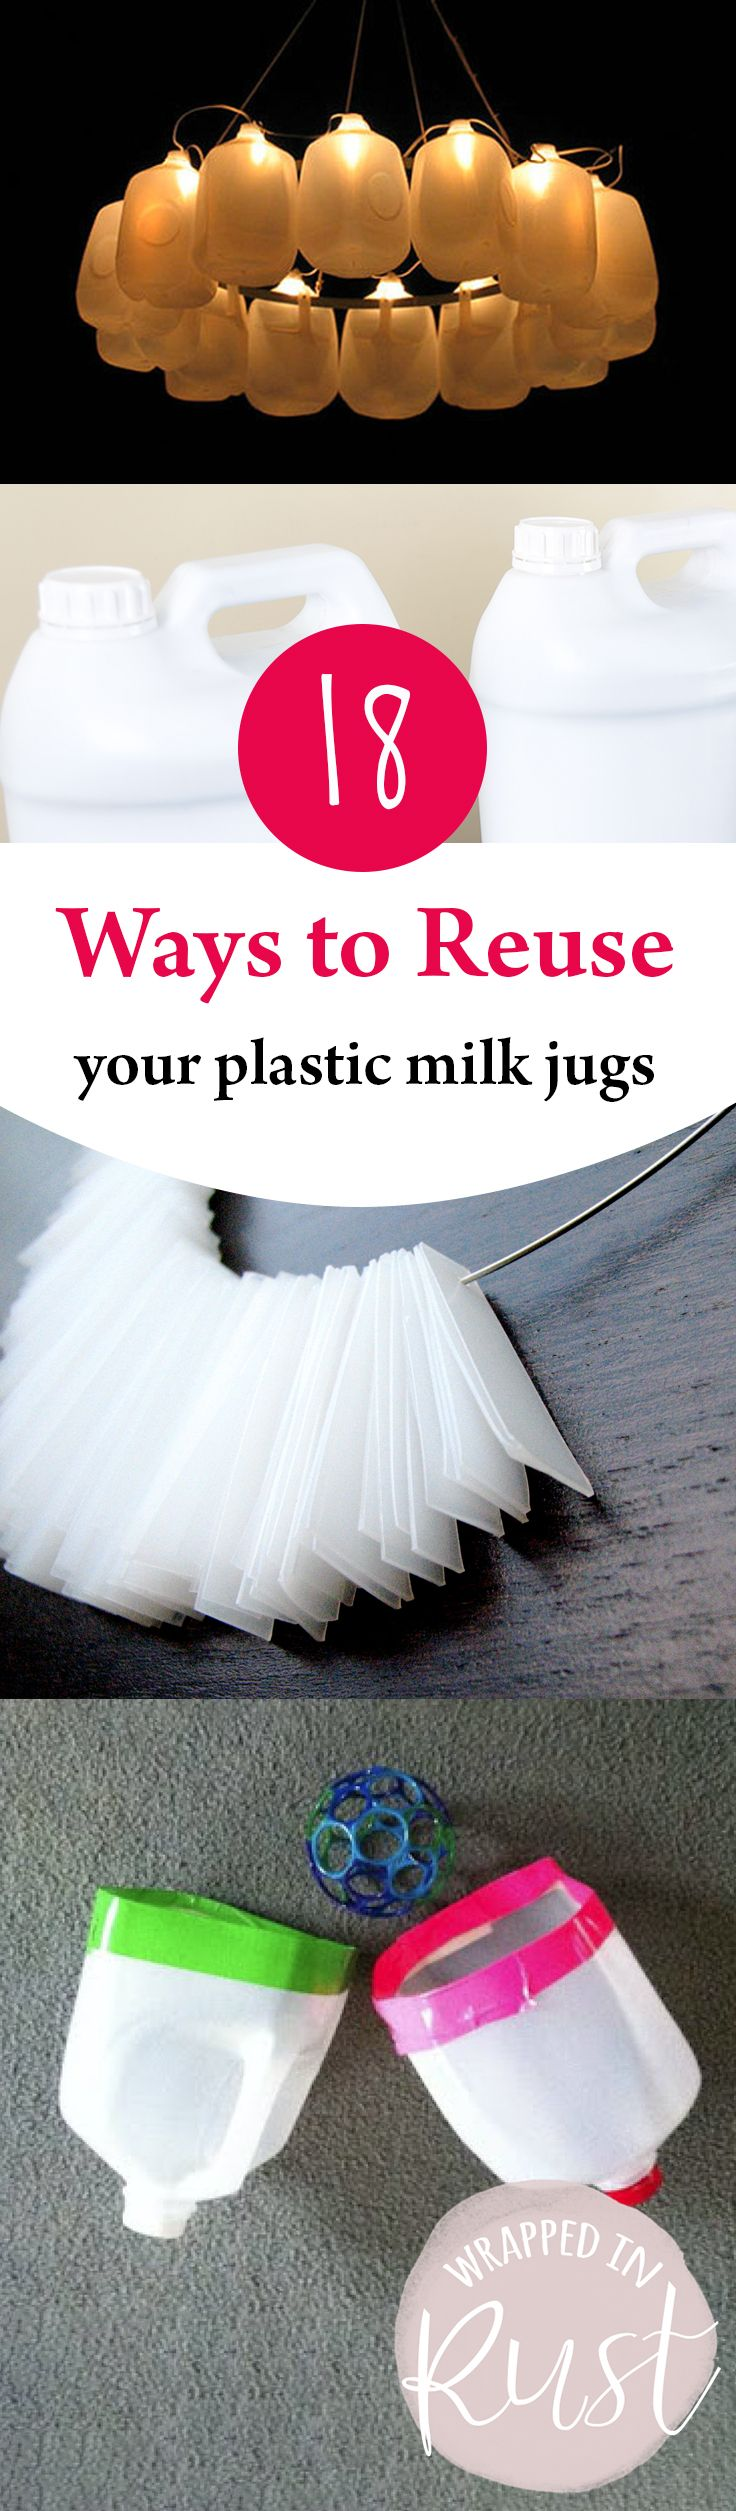 How to Reuse Plastic Milk Jugs, Plastic Milk Jugs, Things to Do With Plastic Milk Jugs, Repurposing Milk Jugs, Things to Do With Milk Jugs, Popular Pin, How to Repurpose Plastic Jugs.